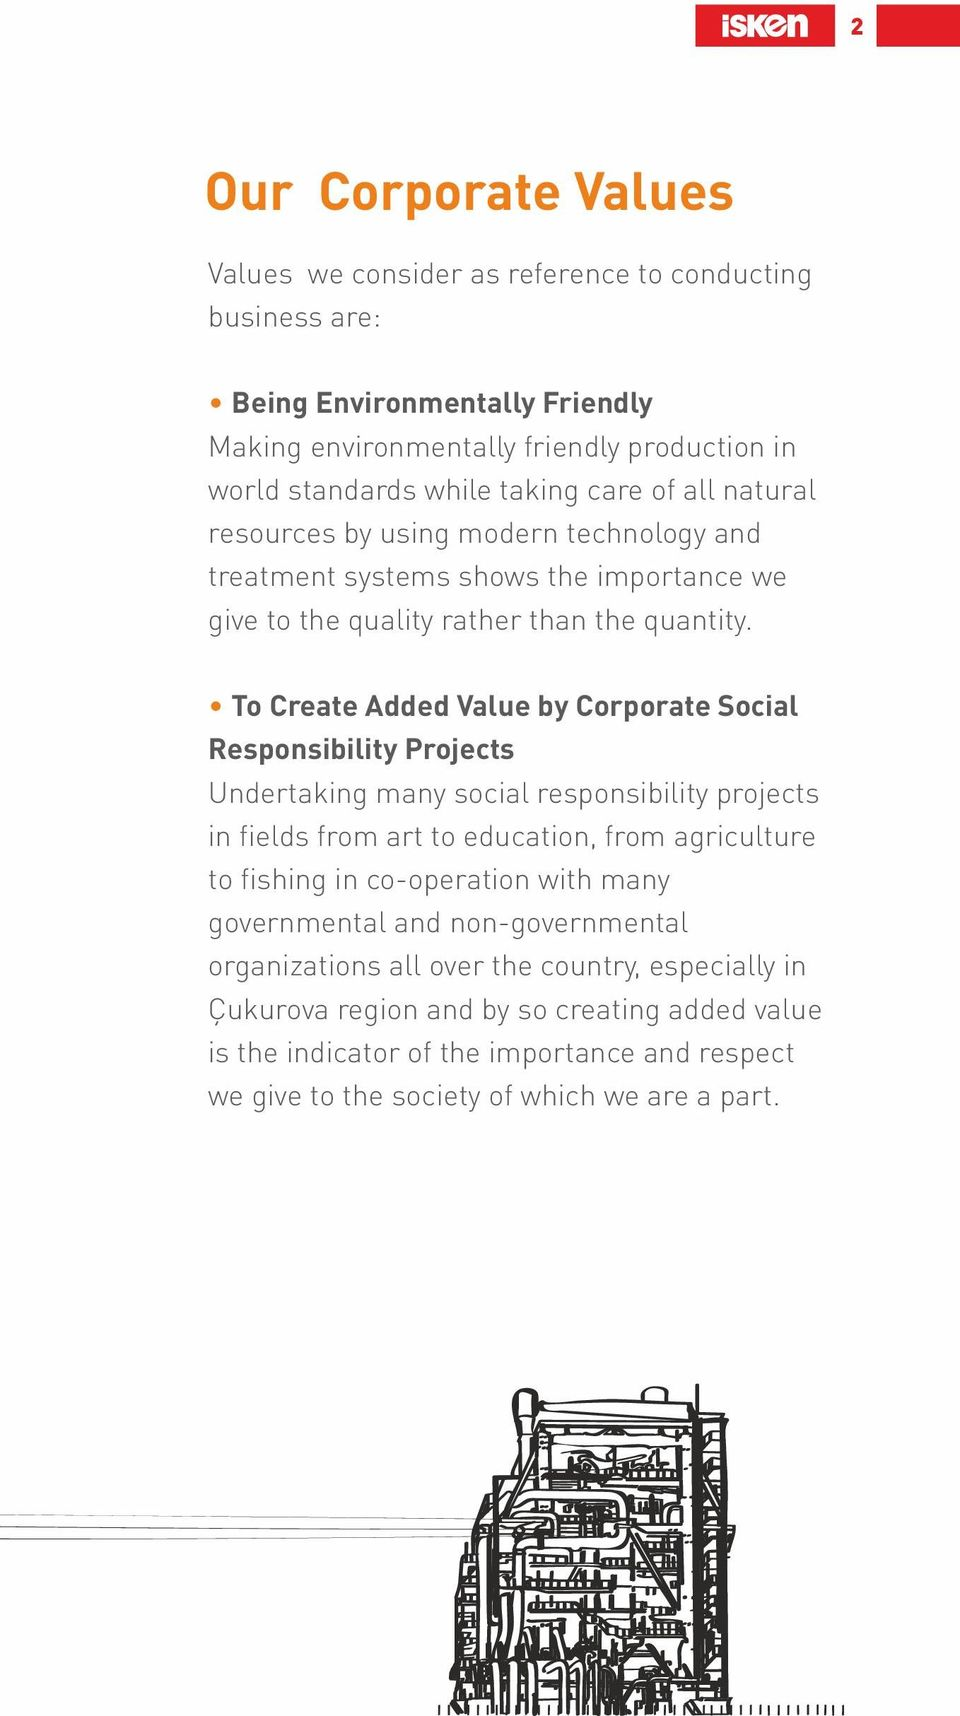 To Create Added Value by Corporate Social Responsibility Projects Undertaking many social responsibility projects in fields from art to education, from agriculture to fishing in co-operation